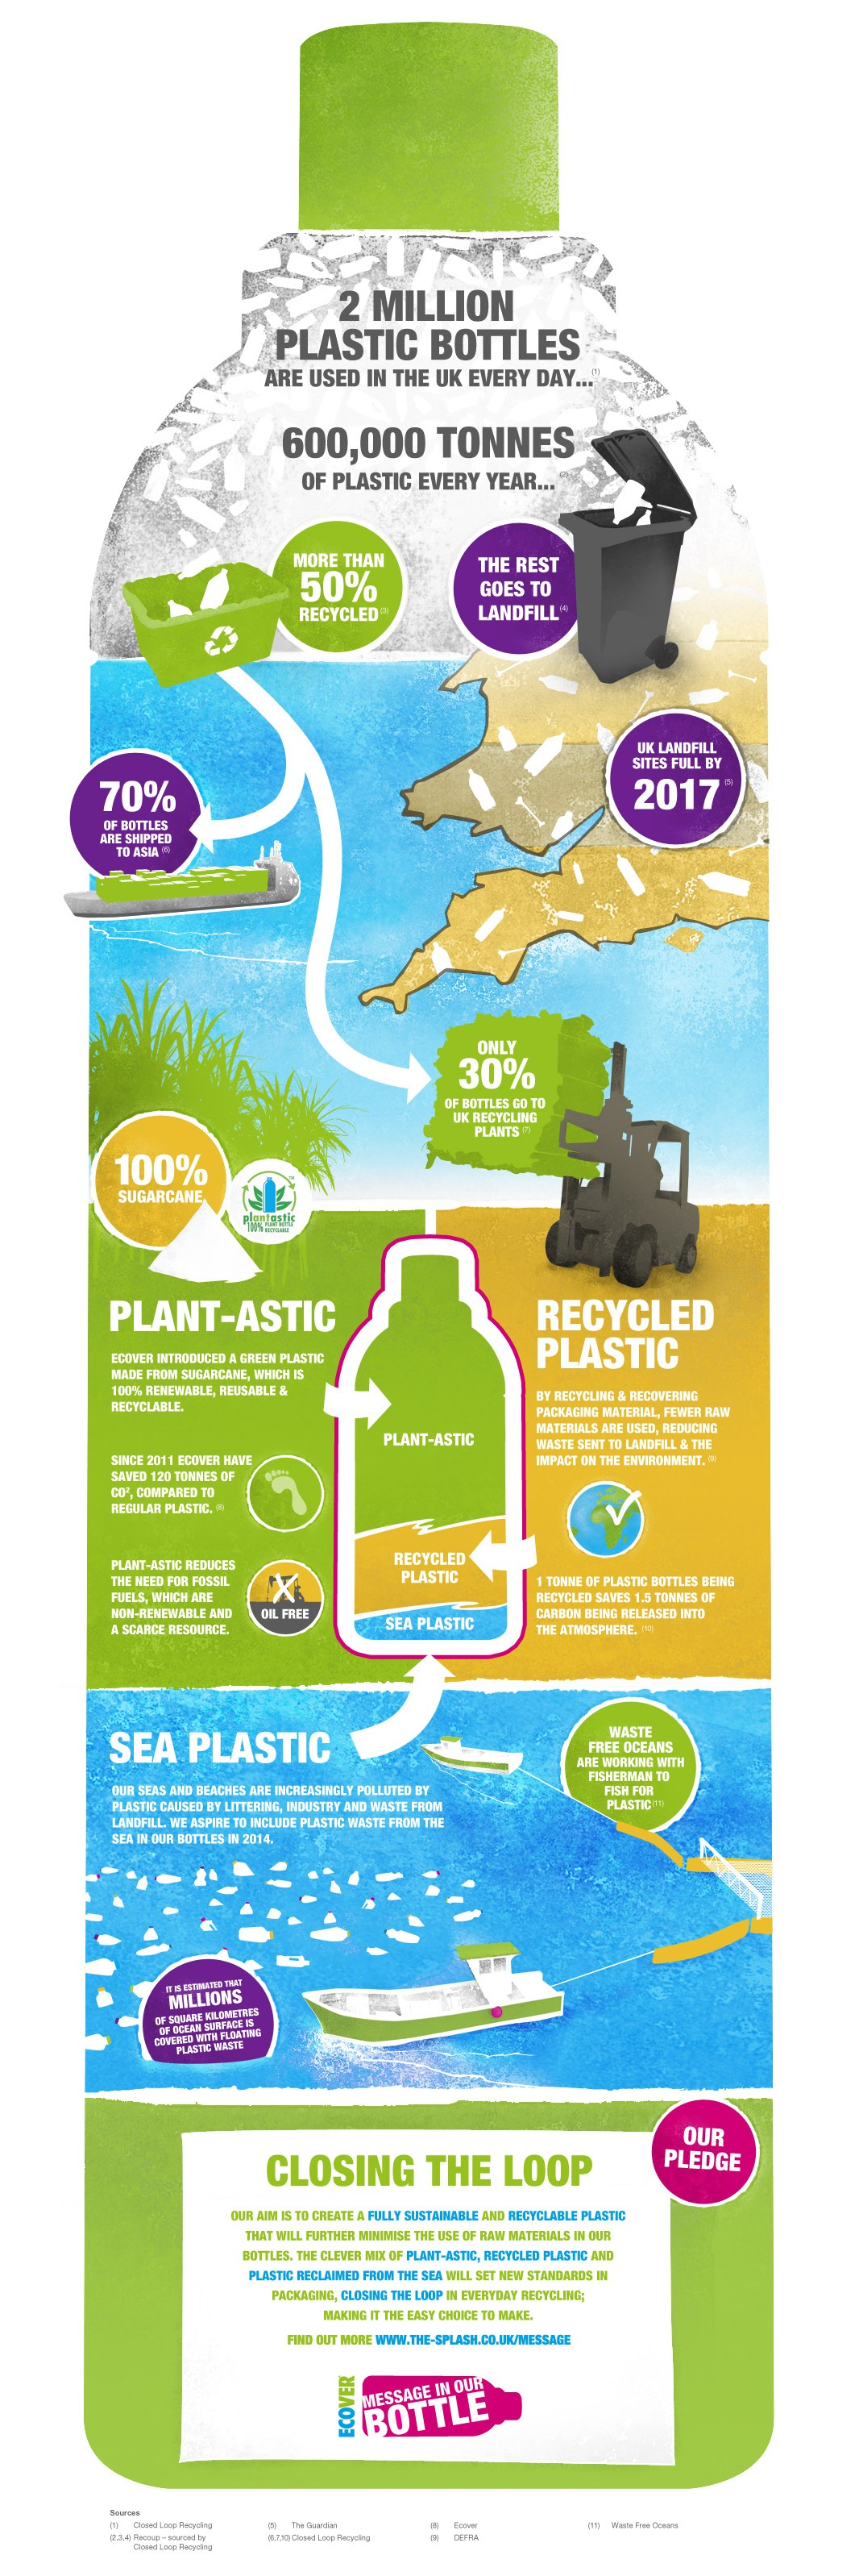 plastic-bottle-recycling--packaging-facts-infographic_514c67b607e5f